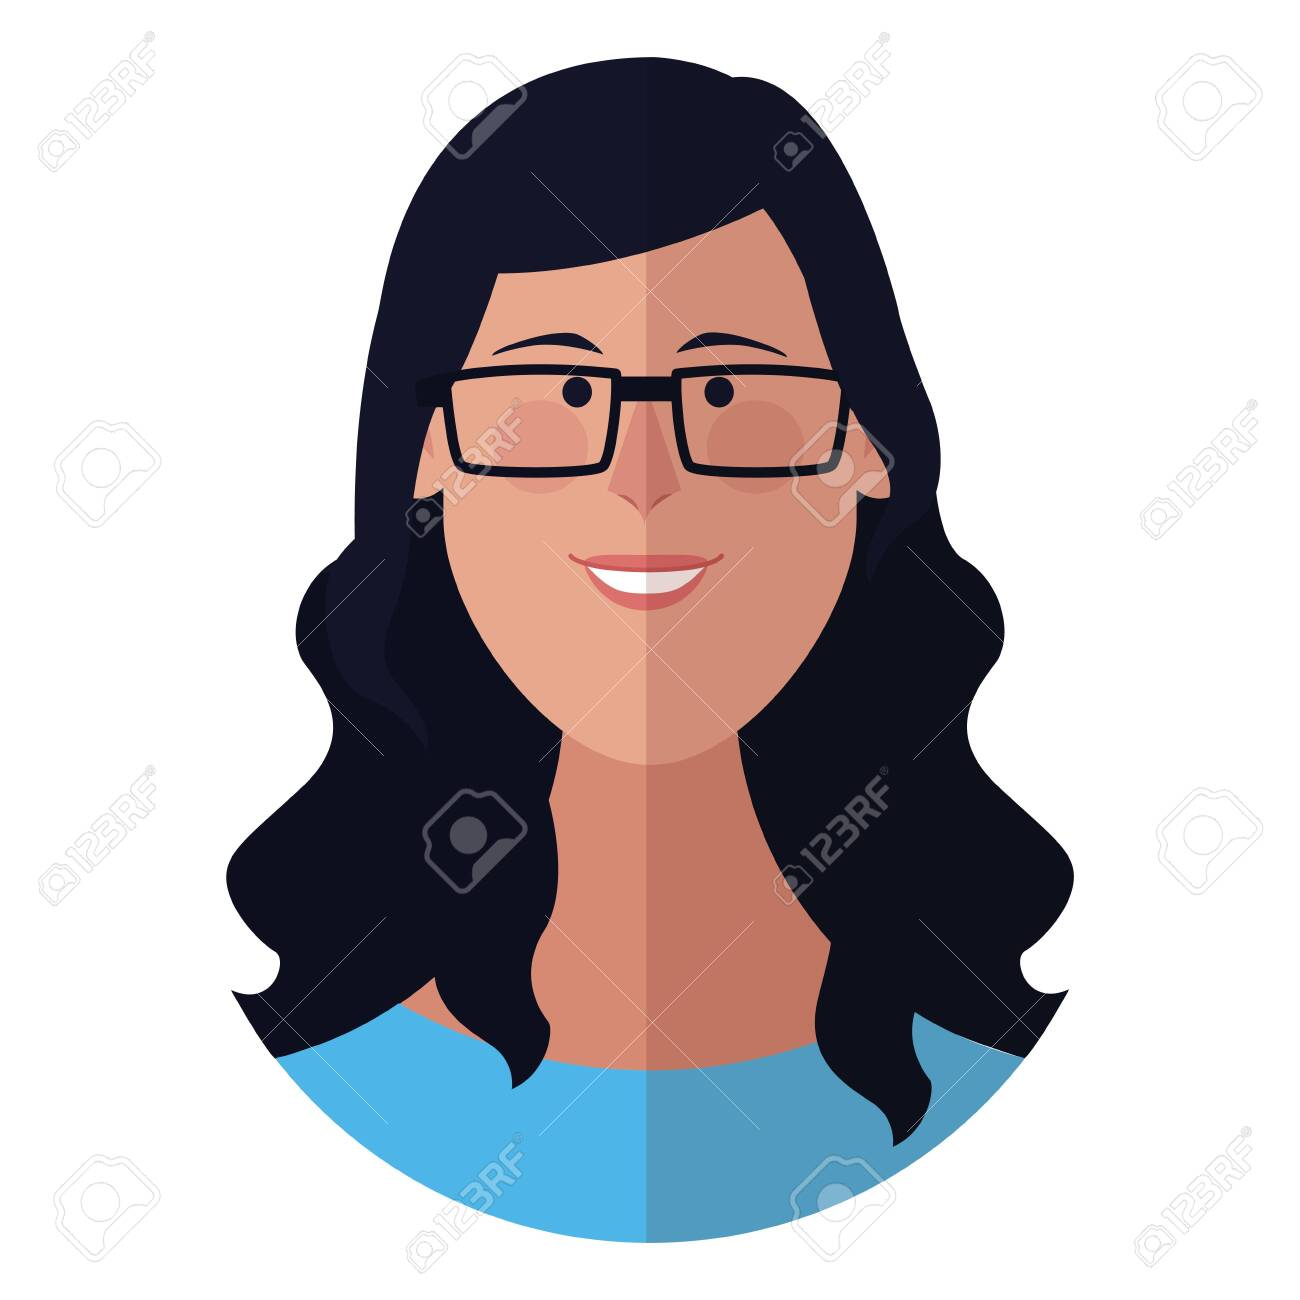 Woman With Glasses Face Cartoon Profile Vector Illustration Graphic Royalty Free Cliparts Vectors And Stock Illustration Image 119849068